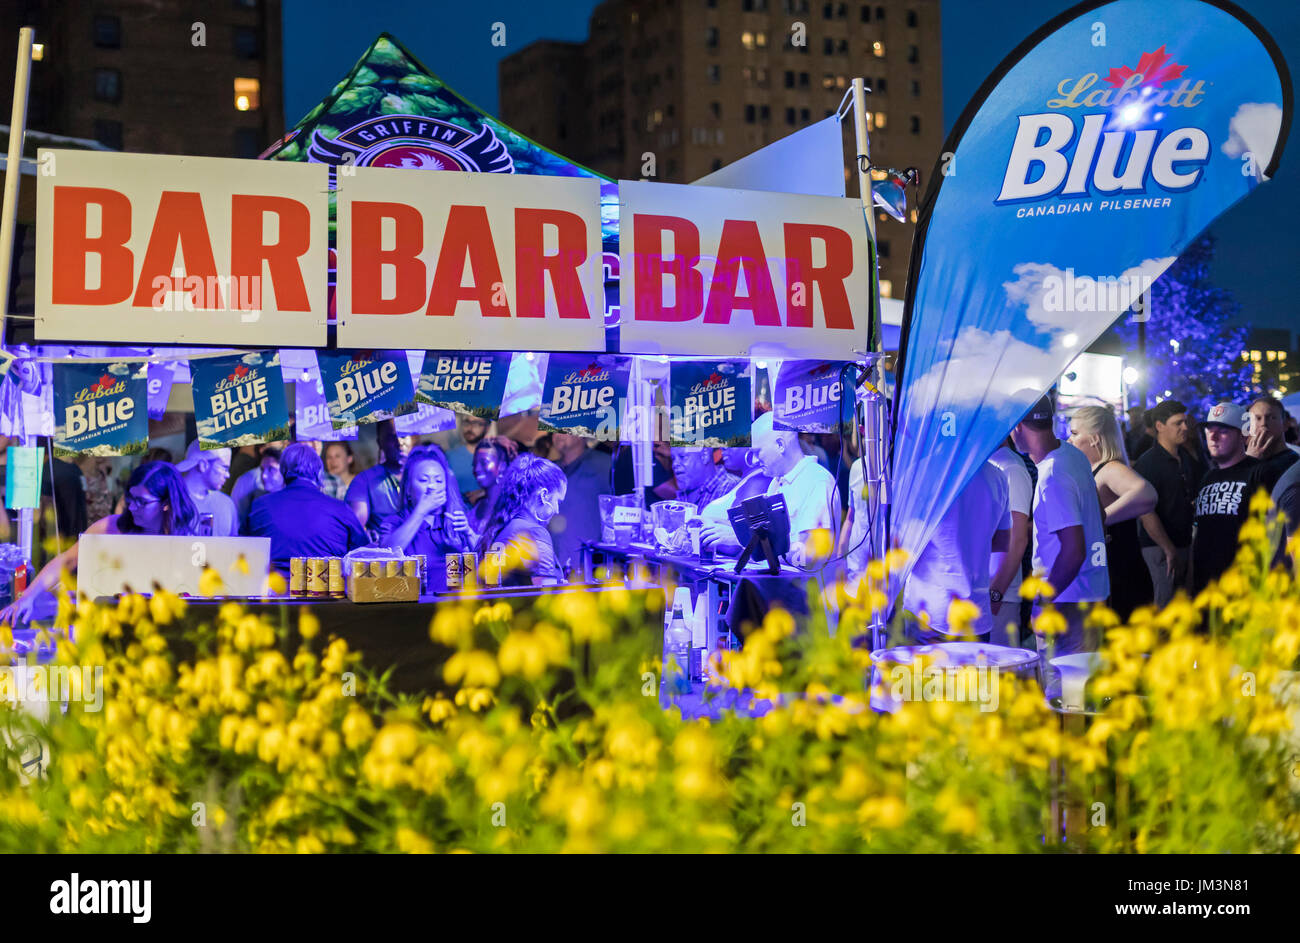 Detroit, Michigan - A beer garden at the opening of Beacon Park, a privately-financed public space developed by DTE Energy. - Stock Image